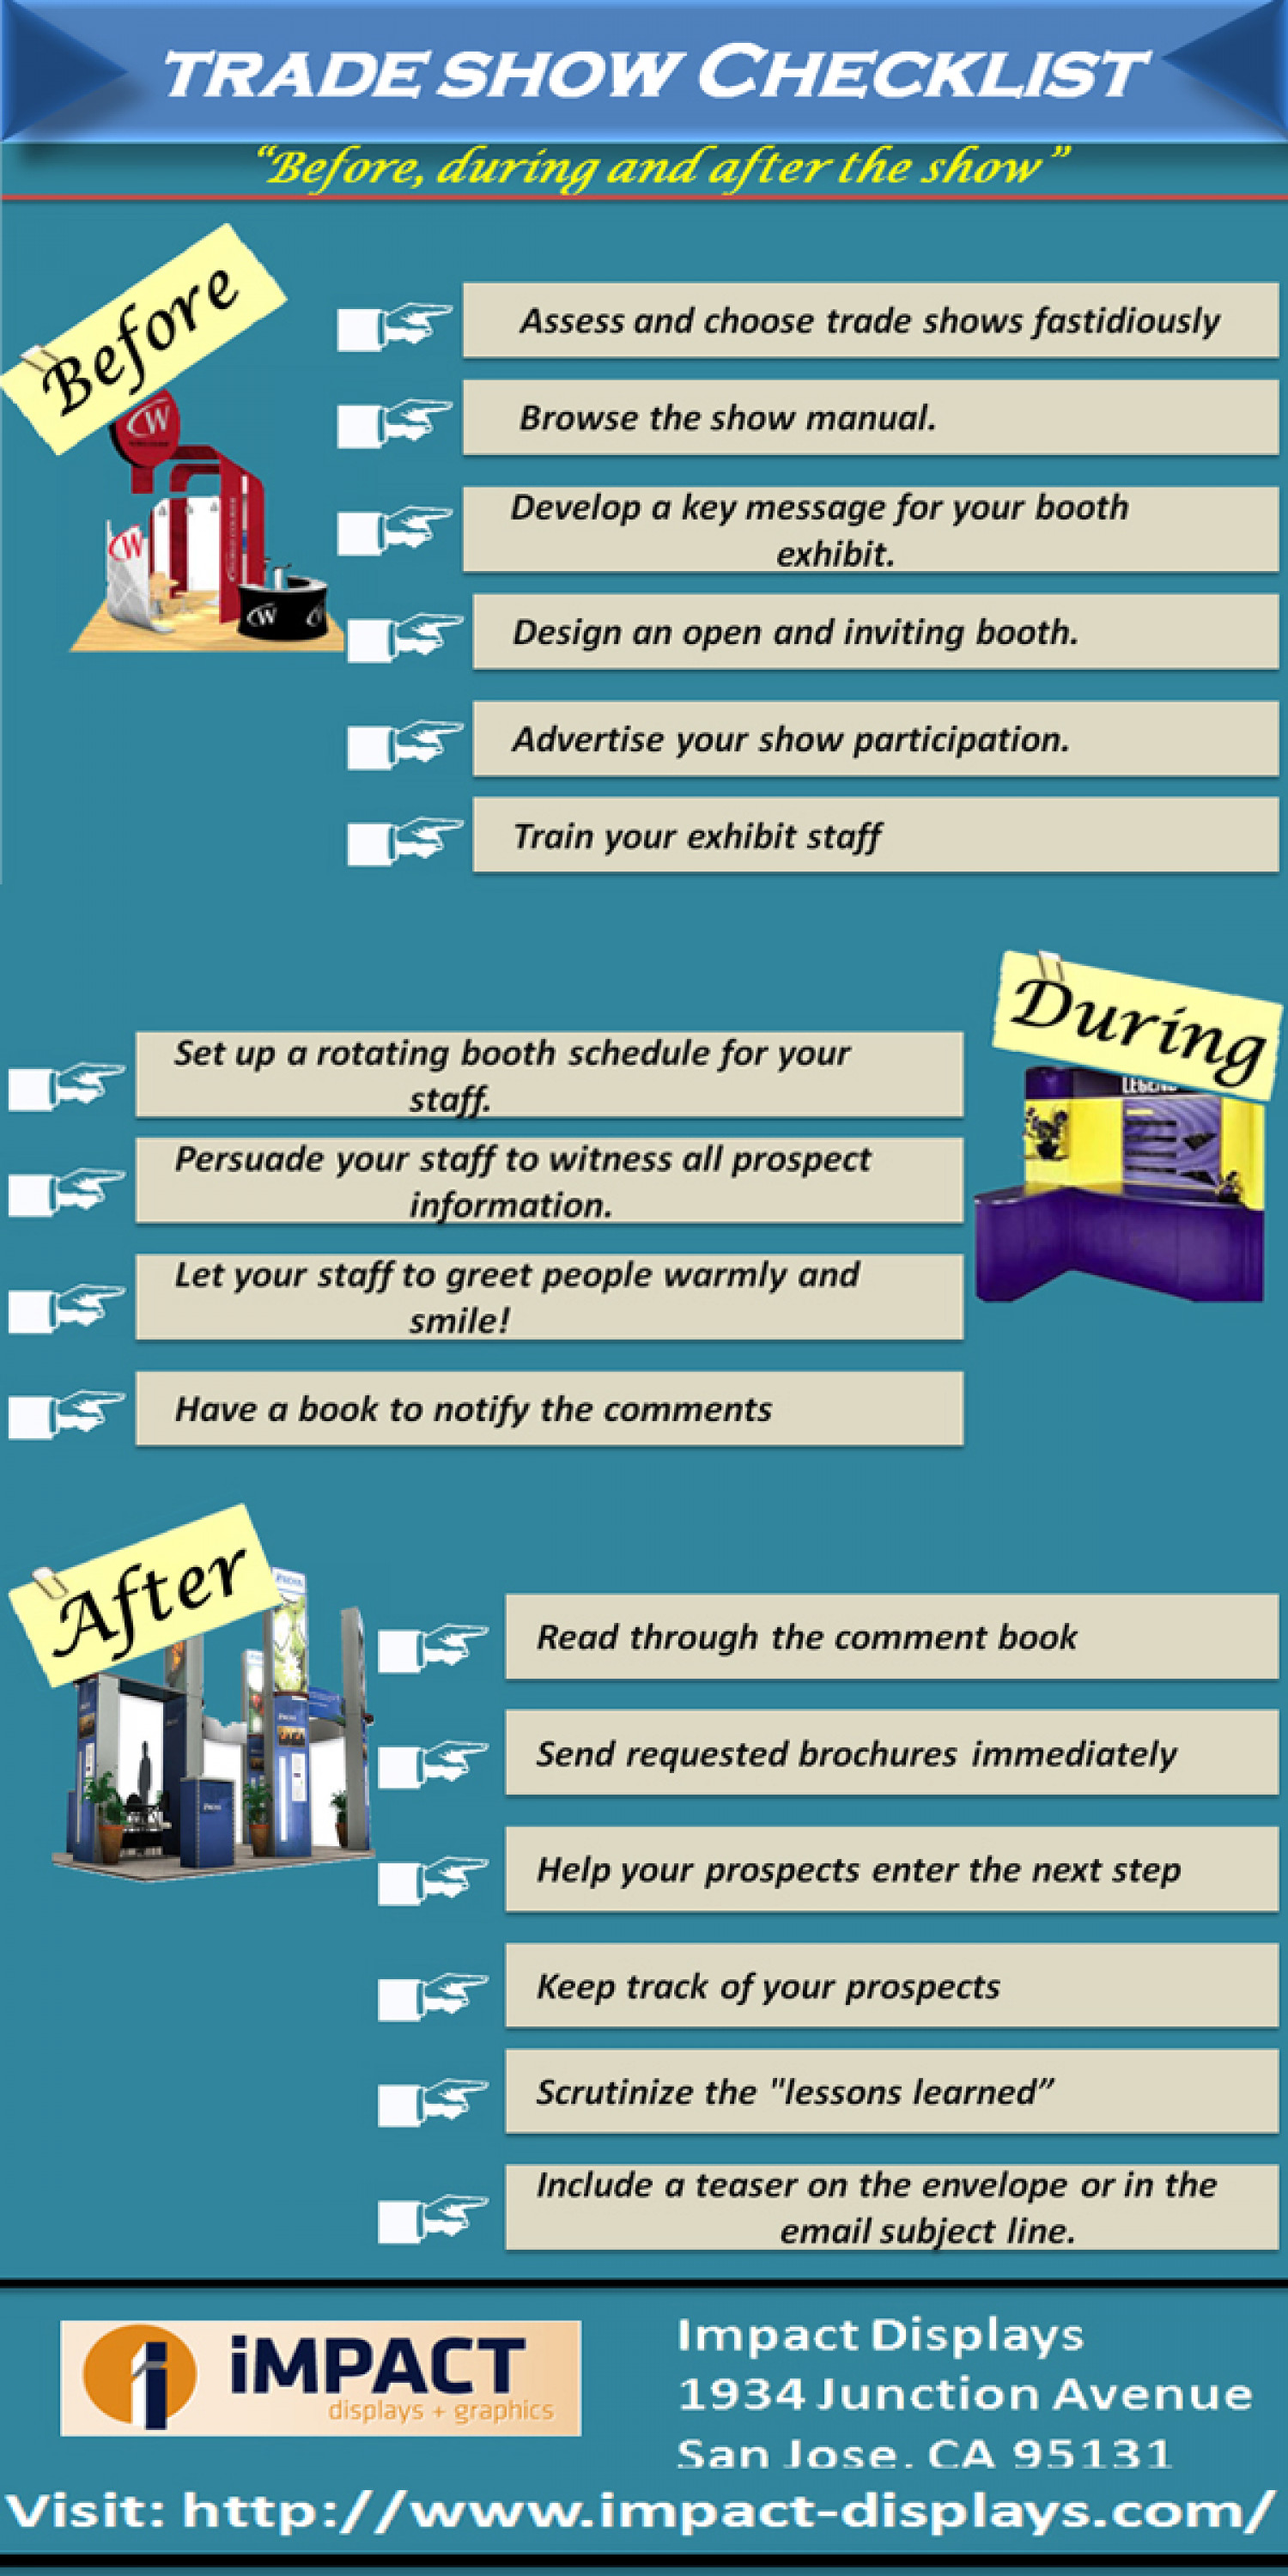 Trade show checklist - before during and after the show Infographic